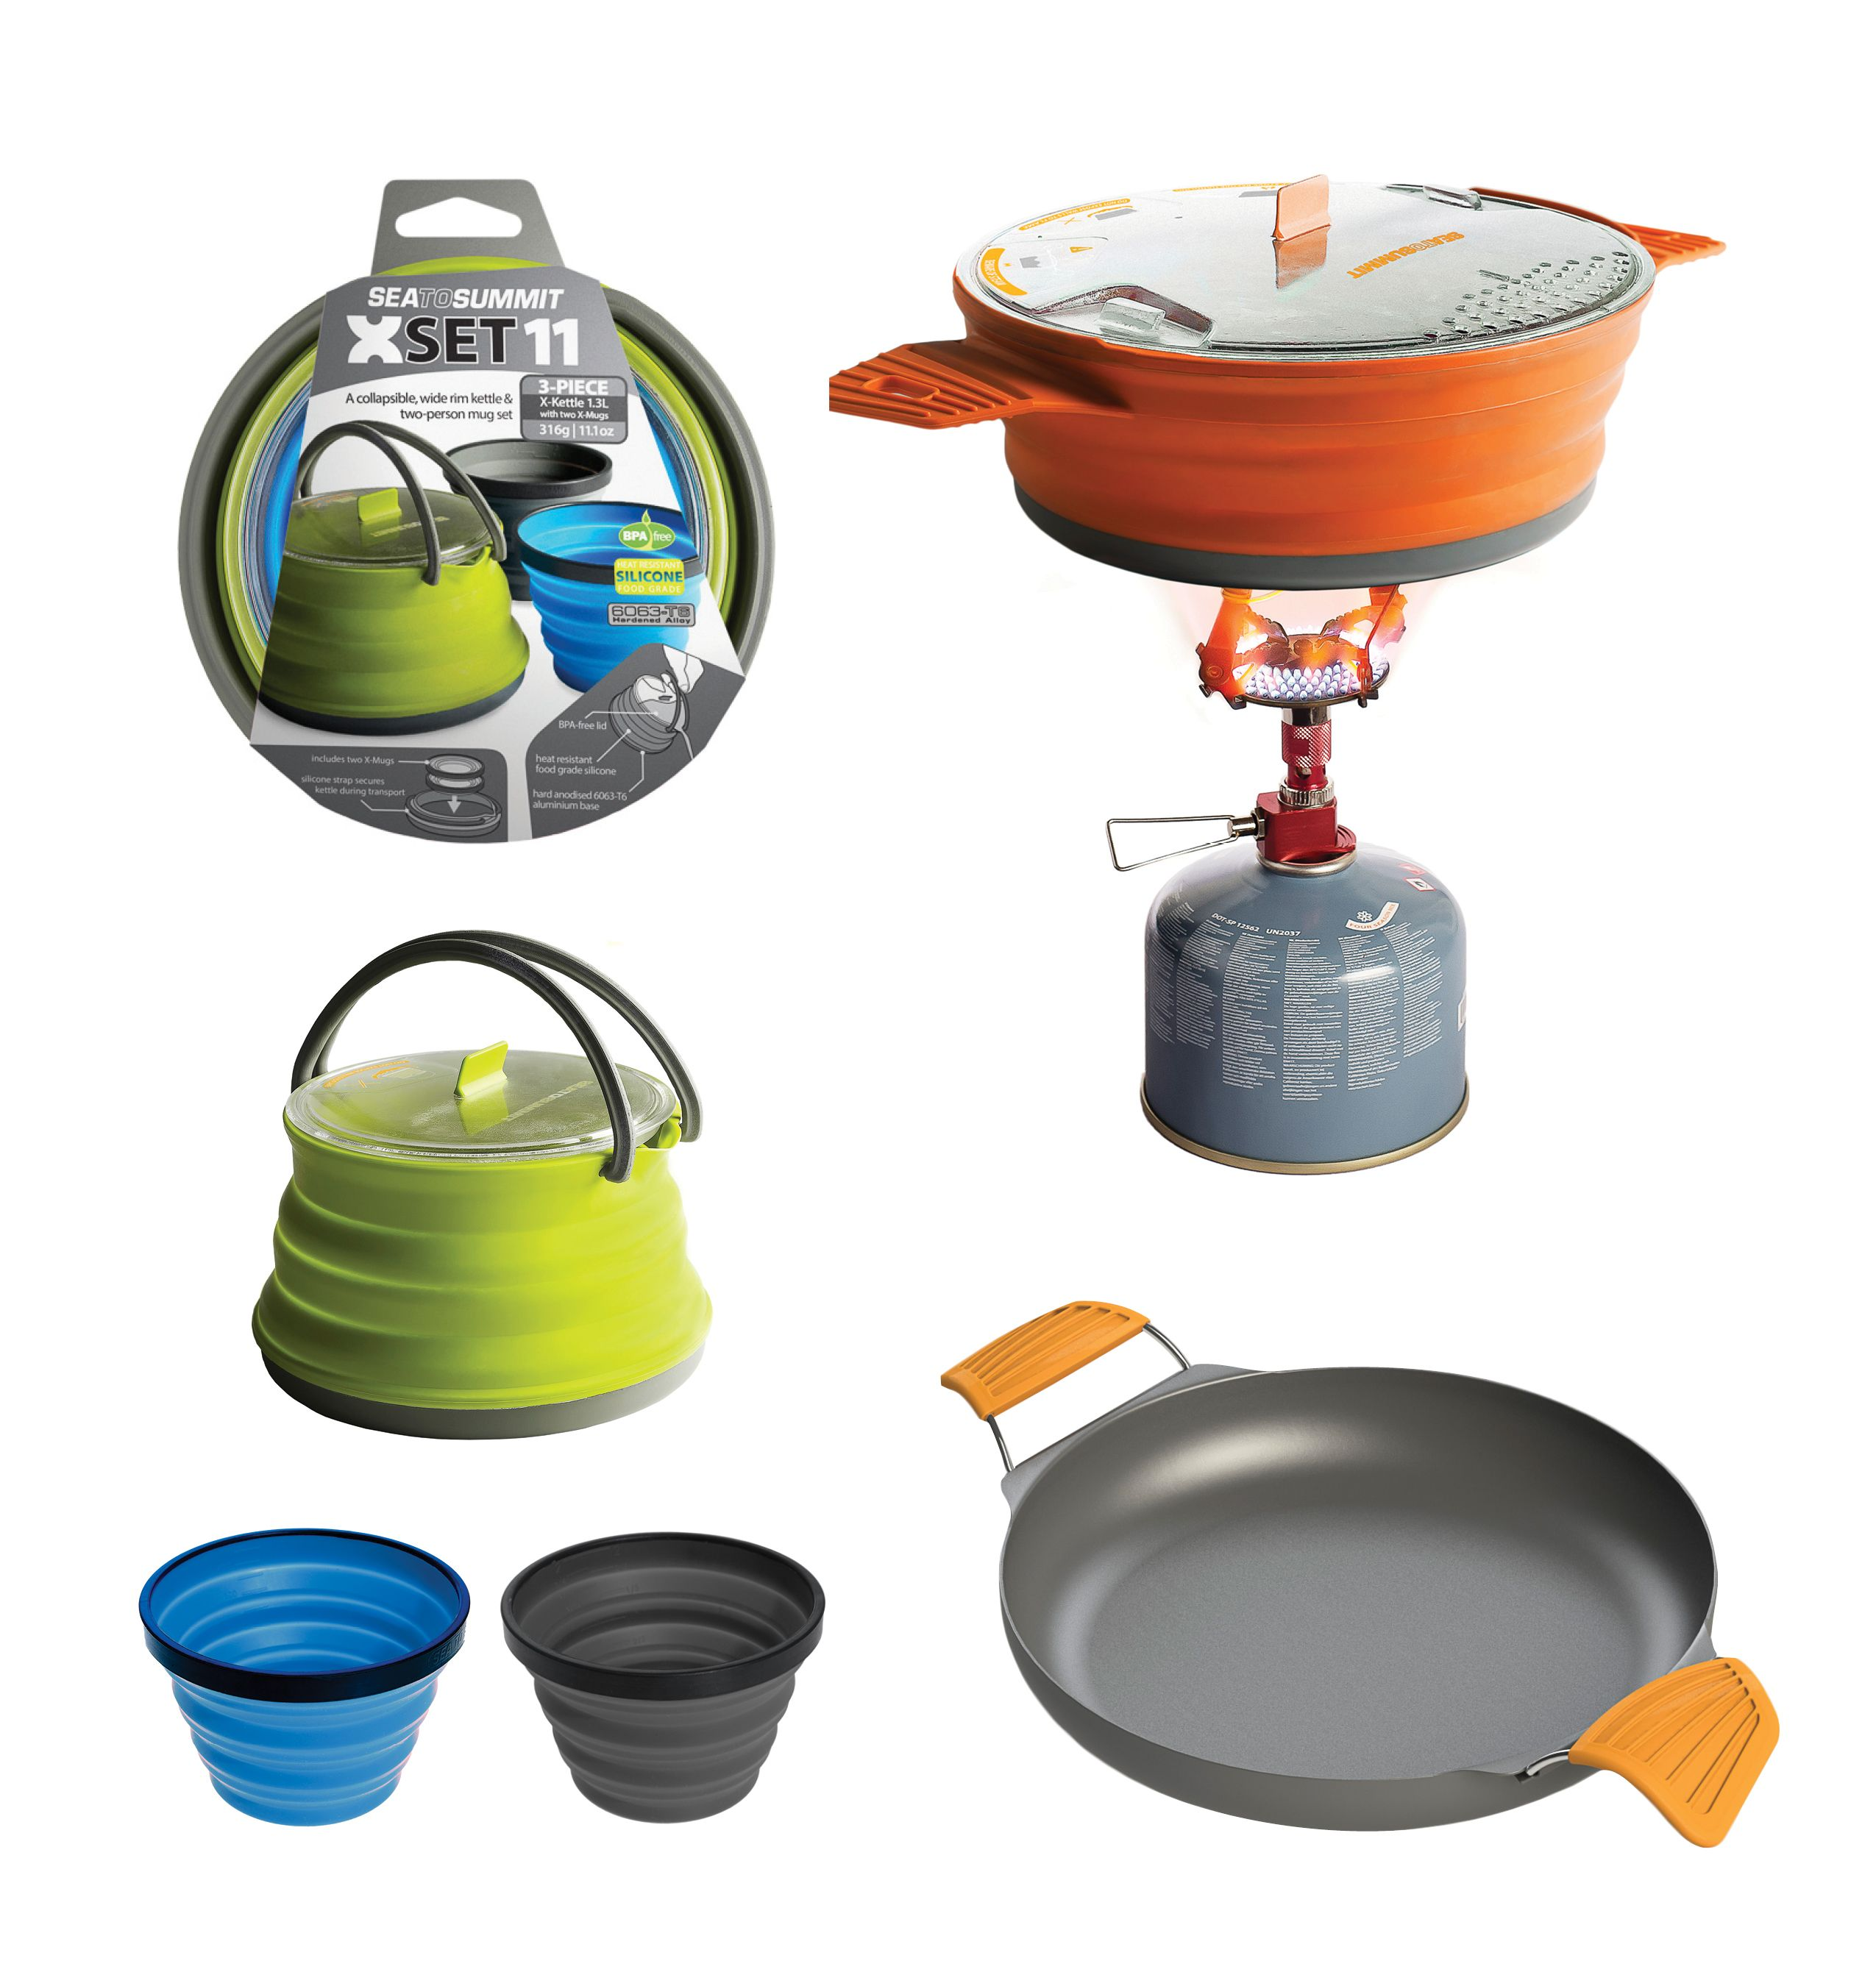 x series l collapsible cookware l camp kitchen l backpackers dream l